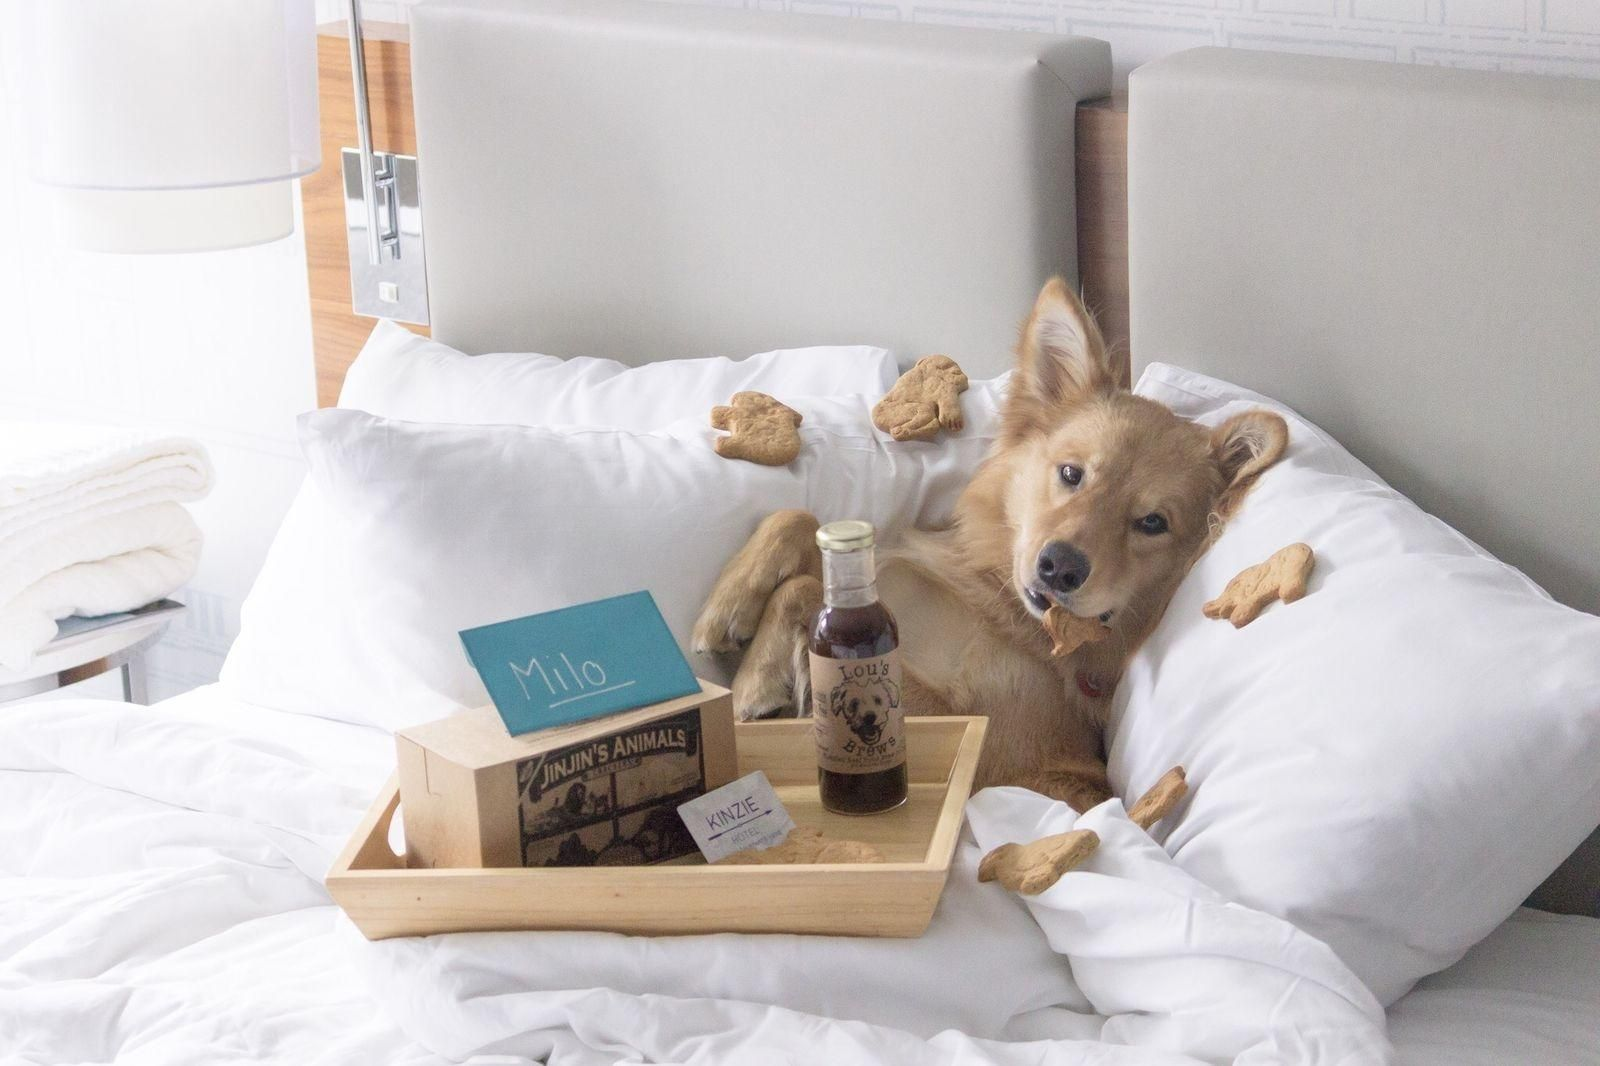 Golden retriever under covers and surrounded by dog treats in a bed at the Kinzie Hotel in Chicago